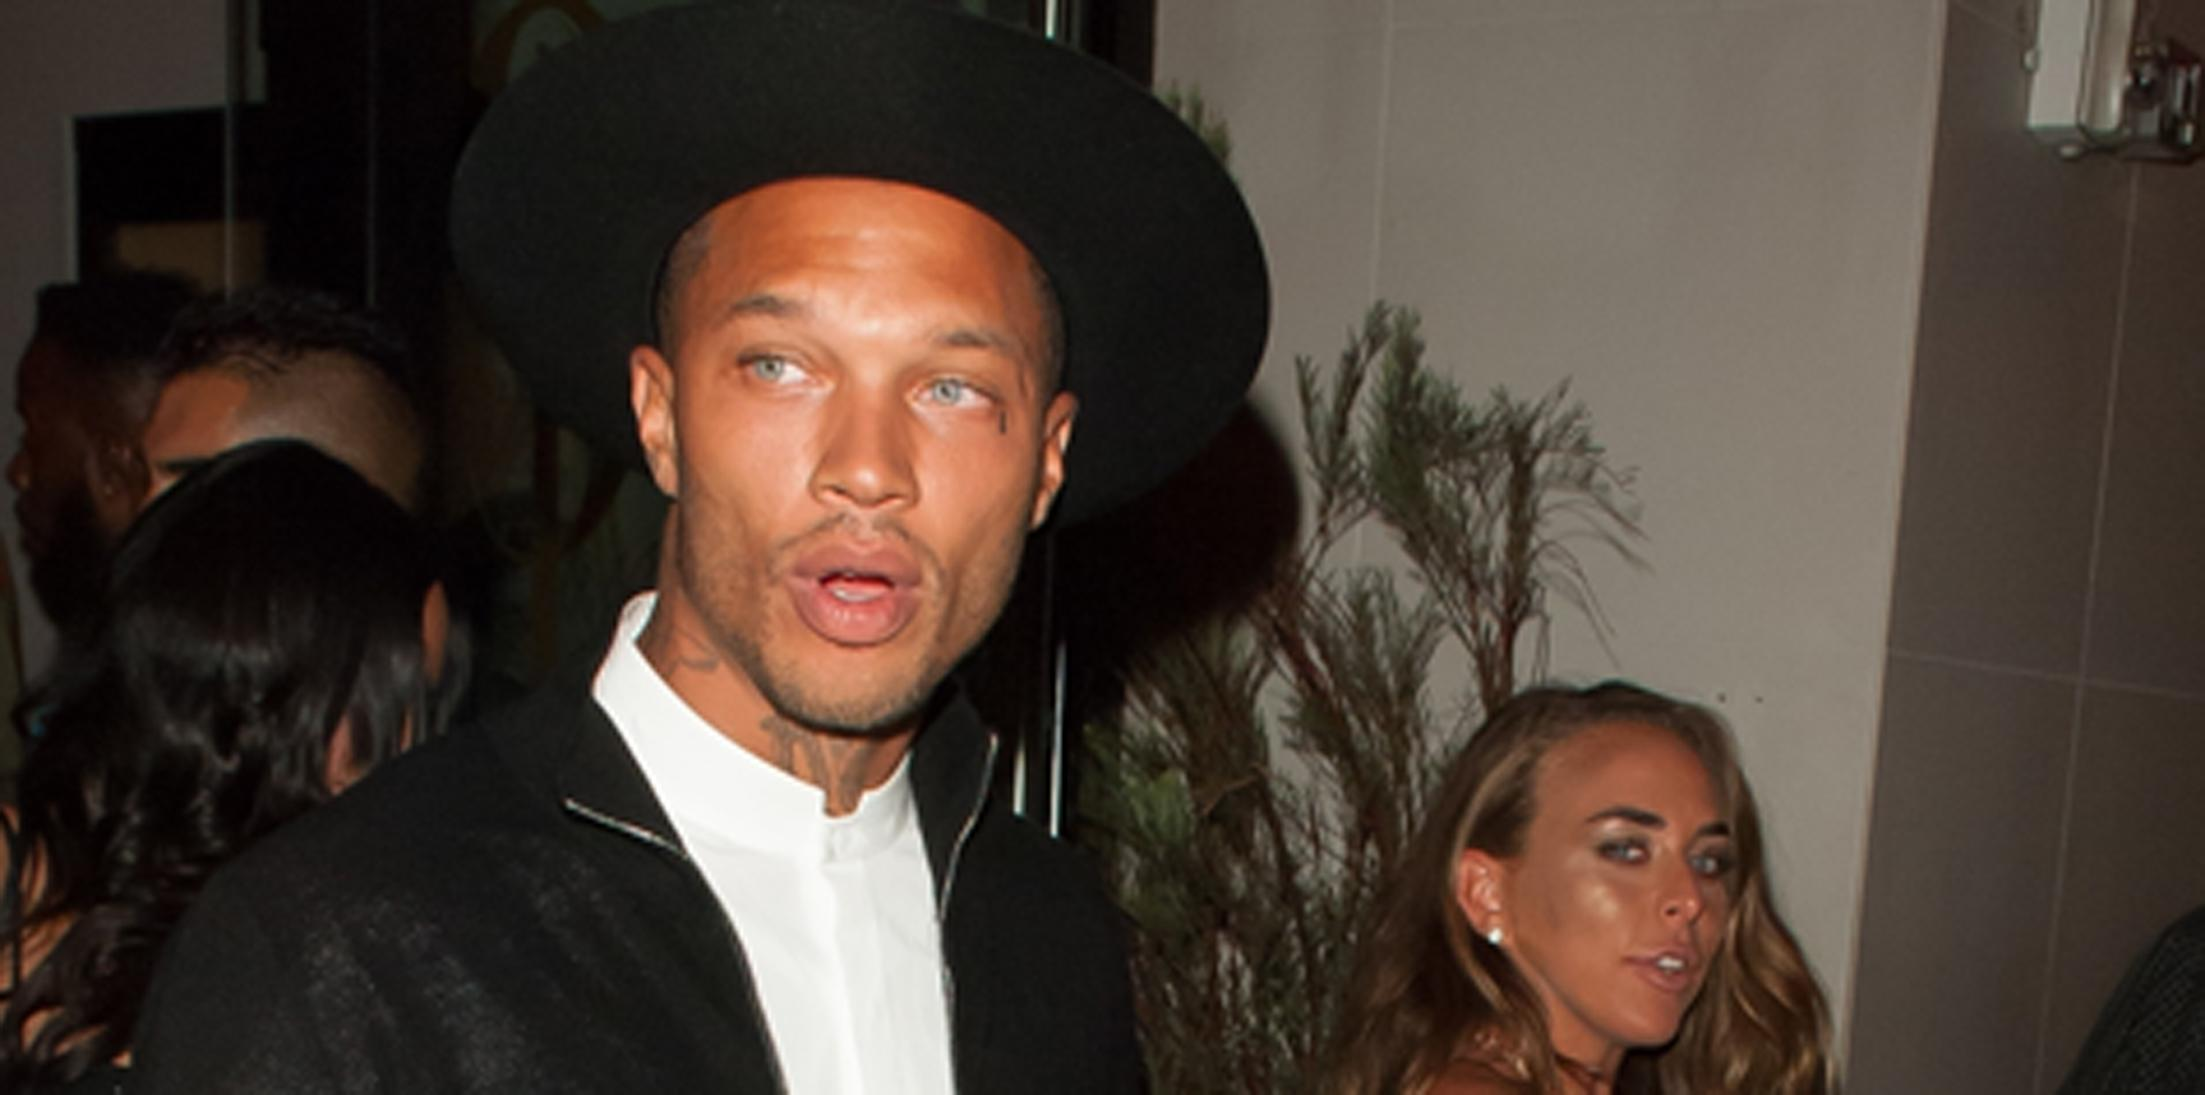 'Hot Felon' Model Jeremy Meeks and Chloe Green keep it fashionable in all black